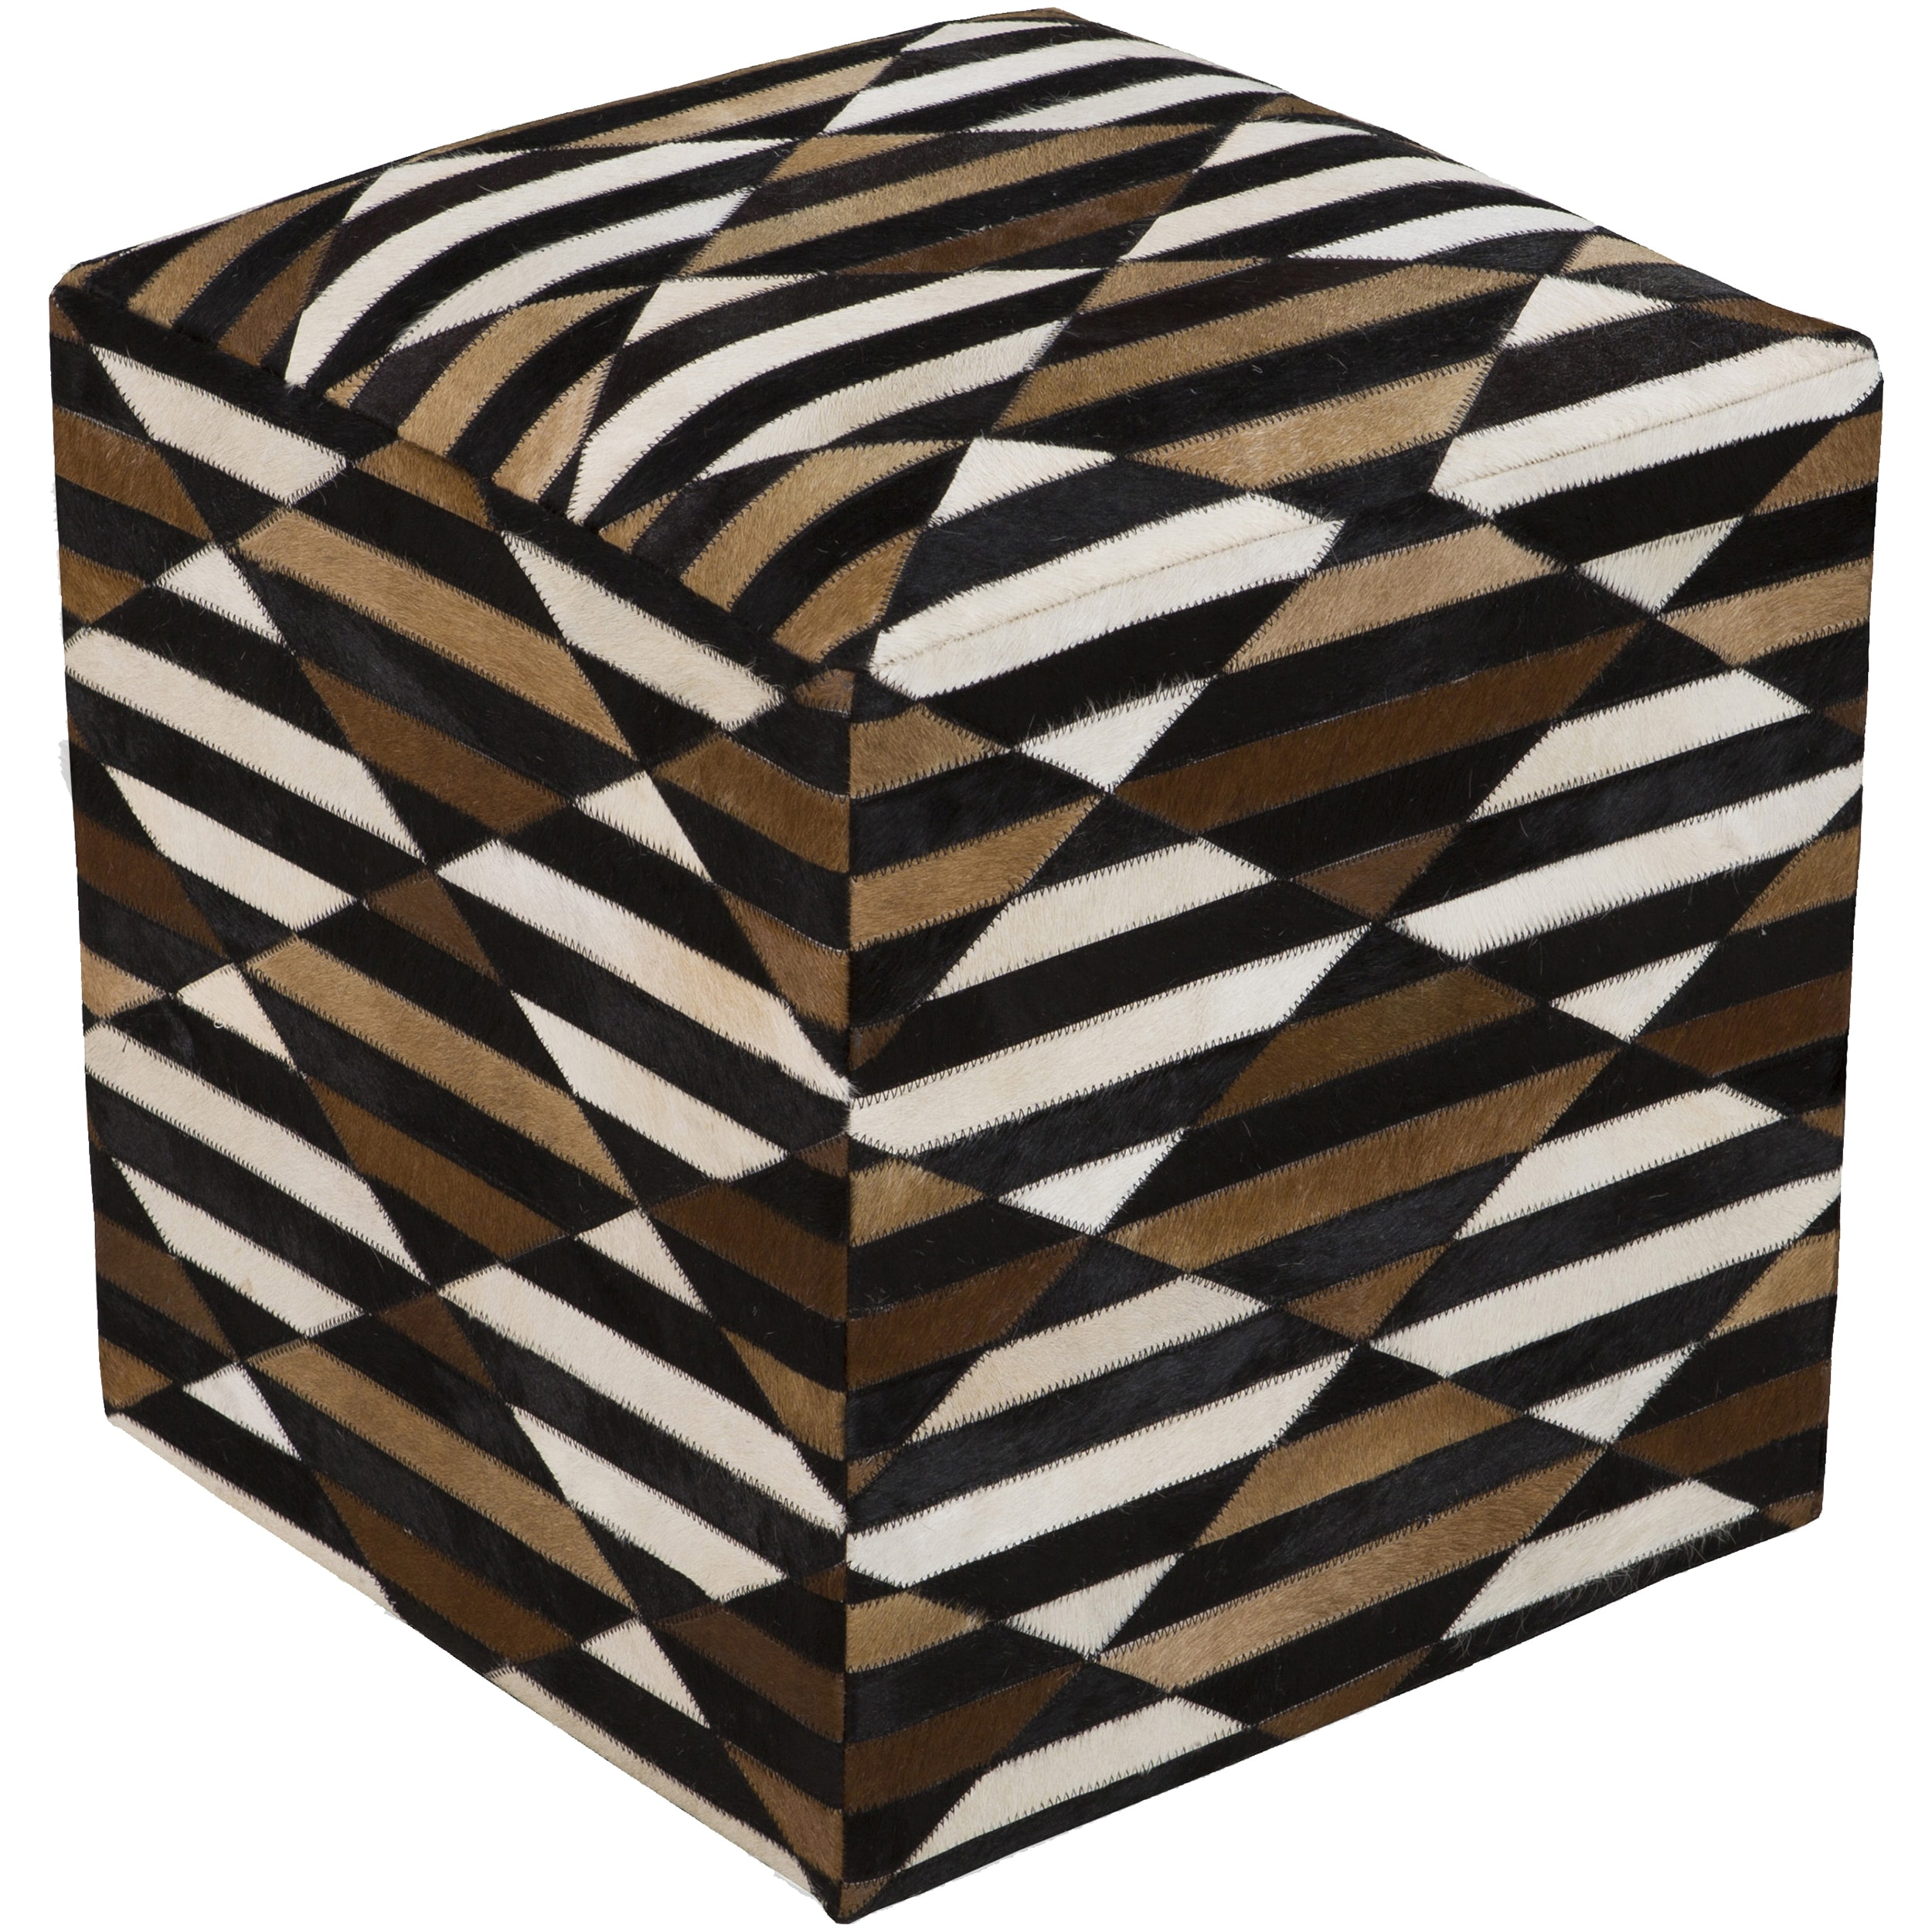 Checkered Arras Square Hair On Hide 18-inch Pouf (Charcoa...